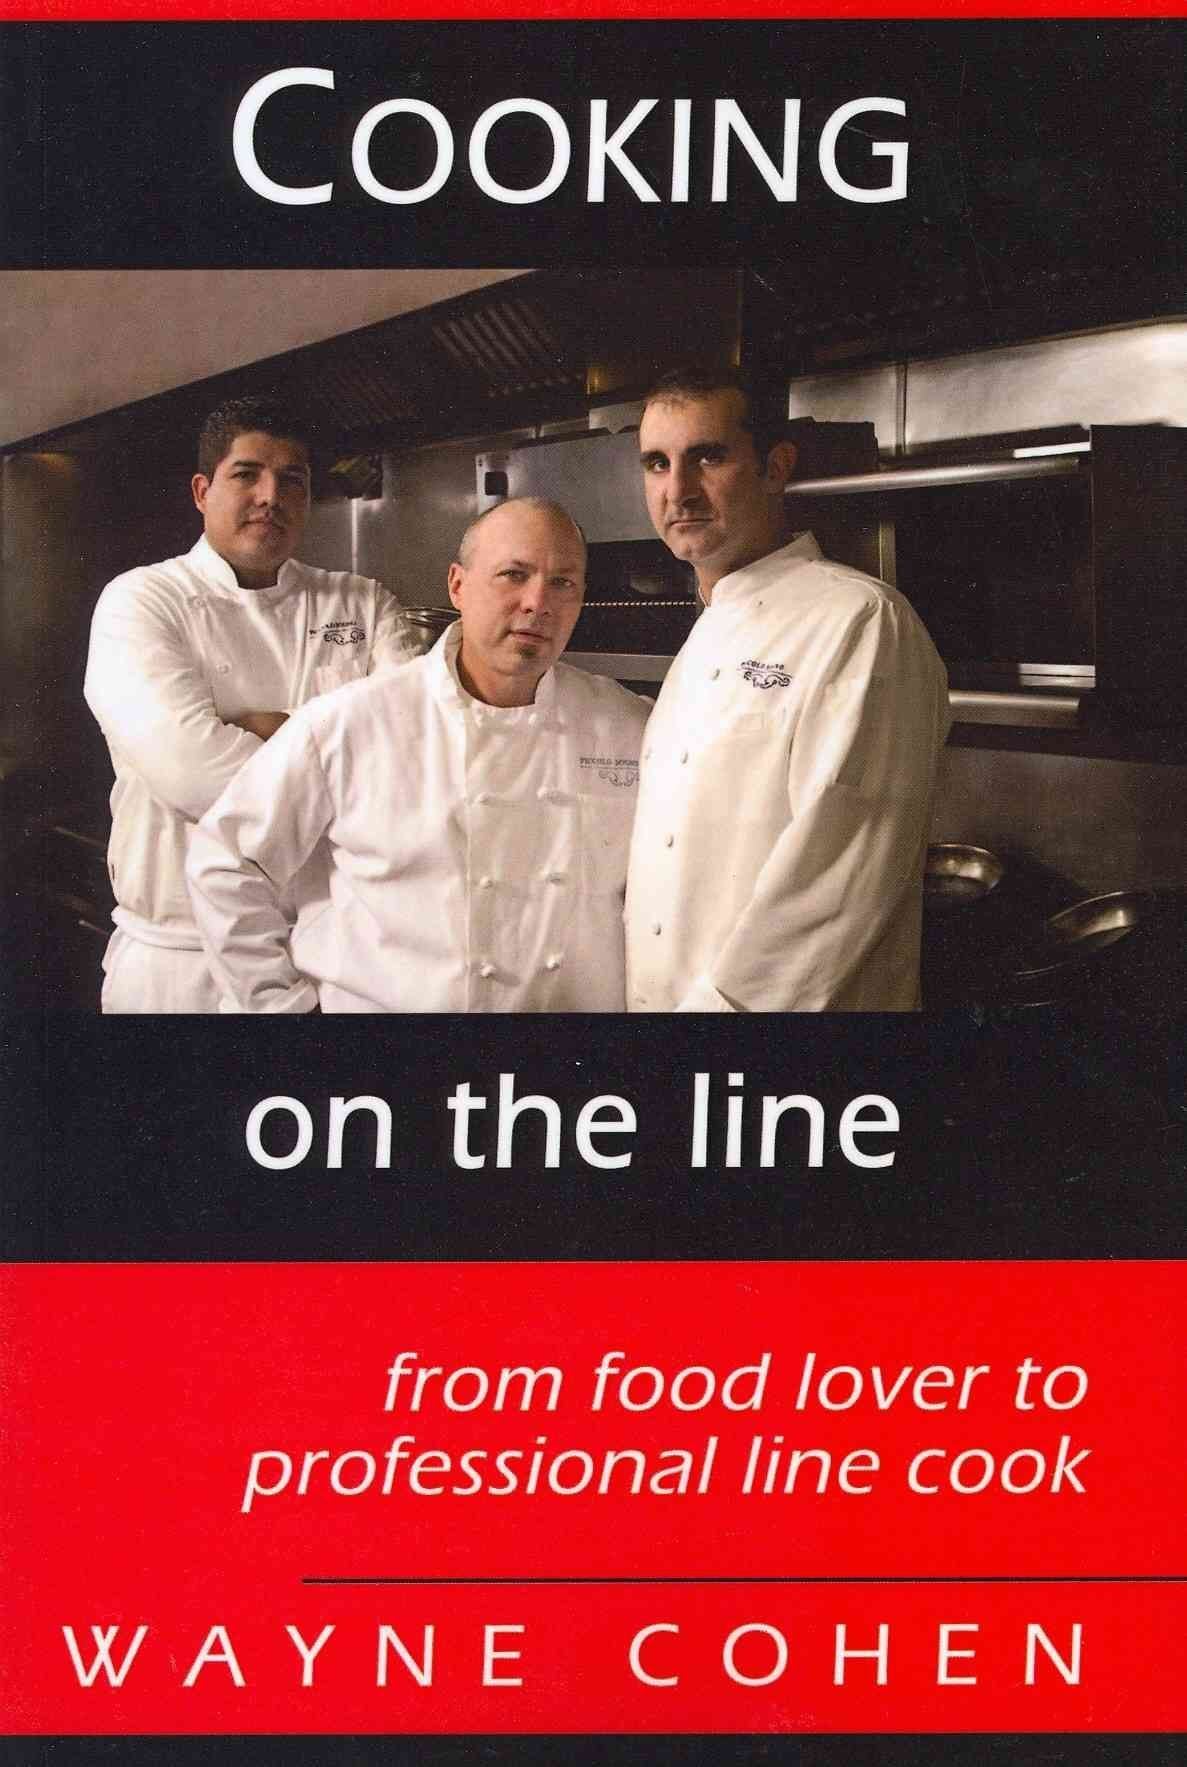 Cooking on the Line - Wayne Cohen